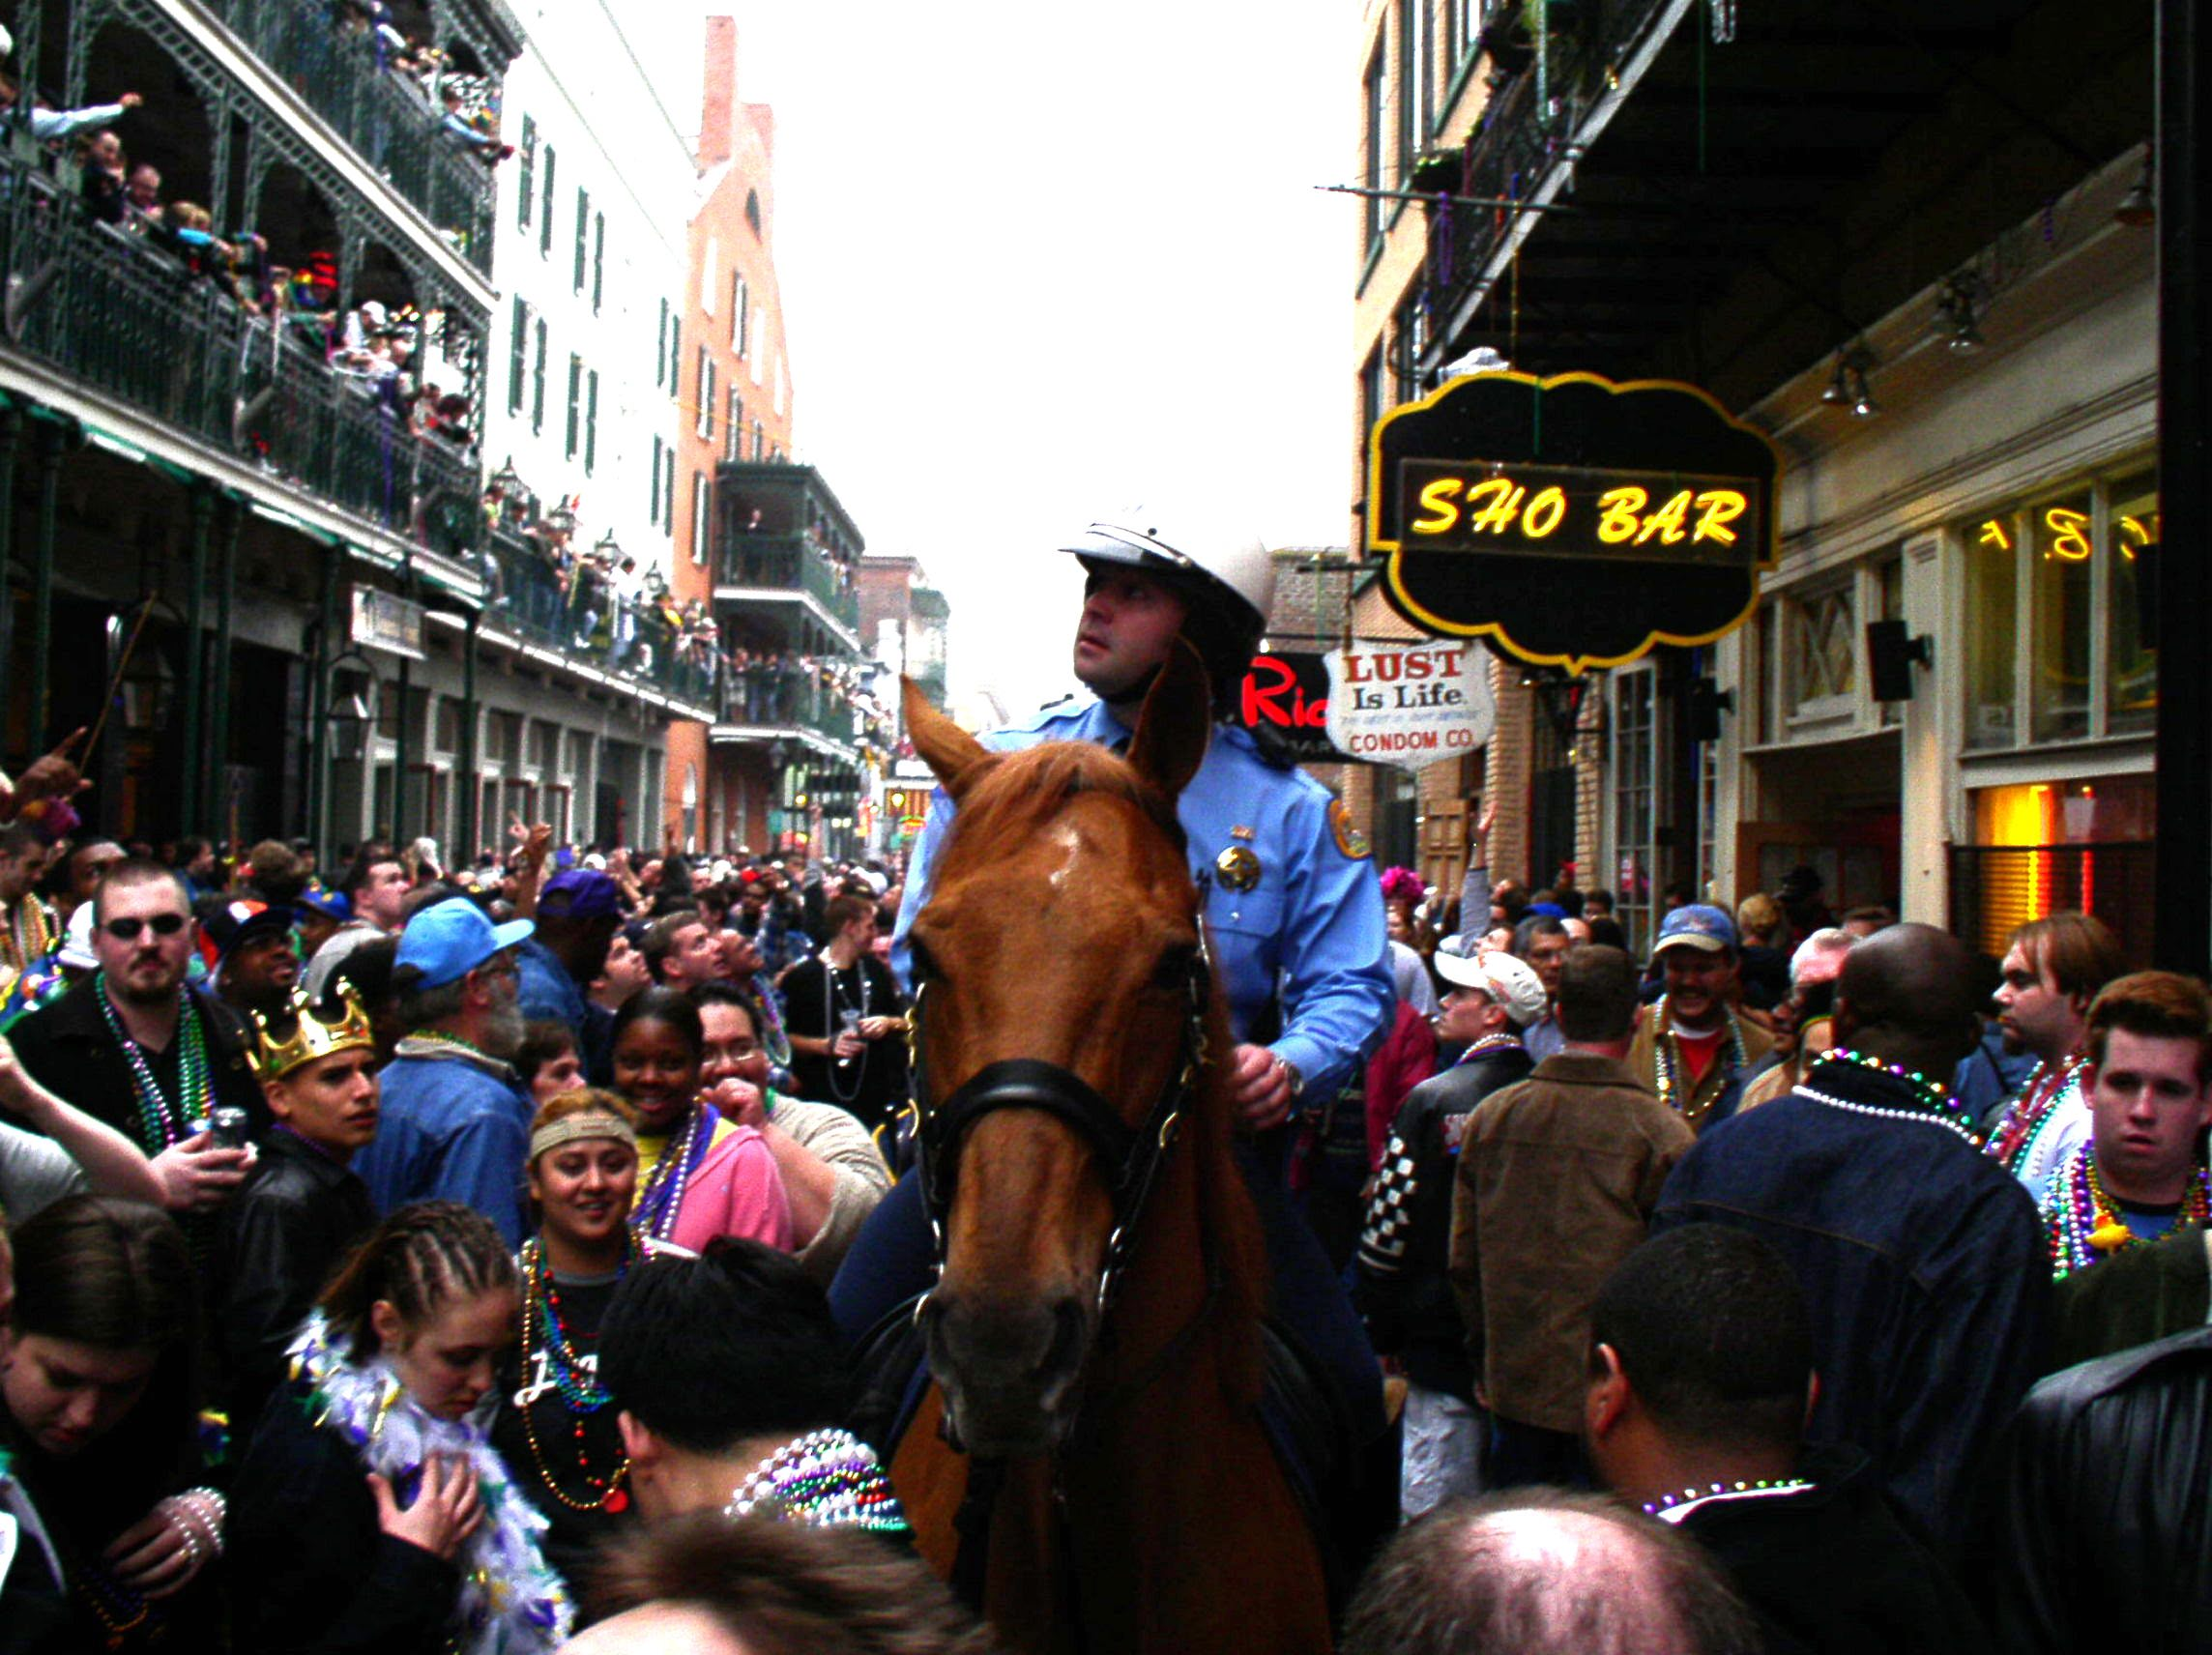 Arrested During Mardi Gras